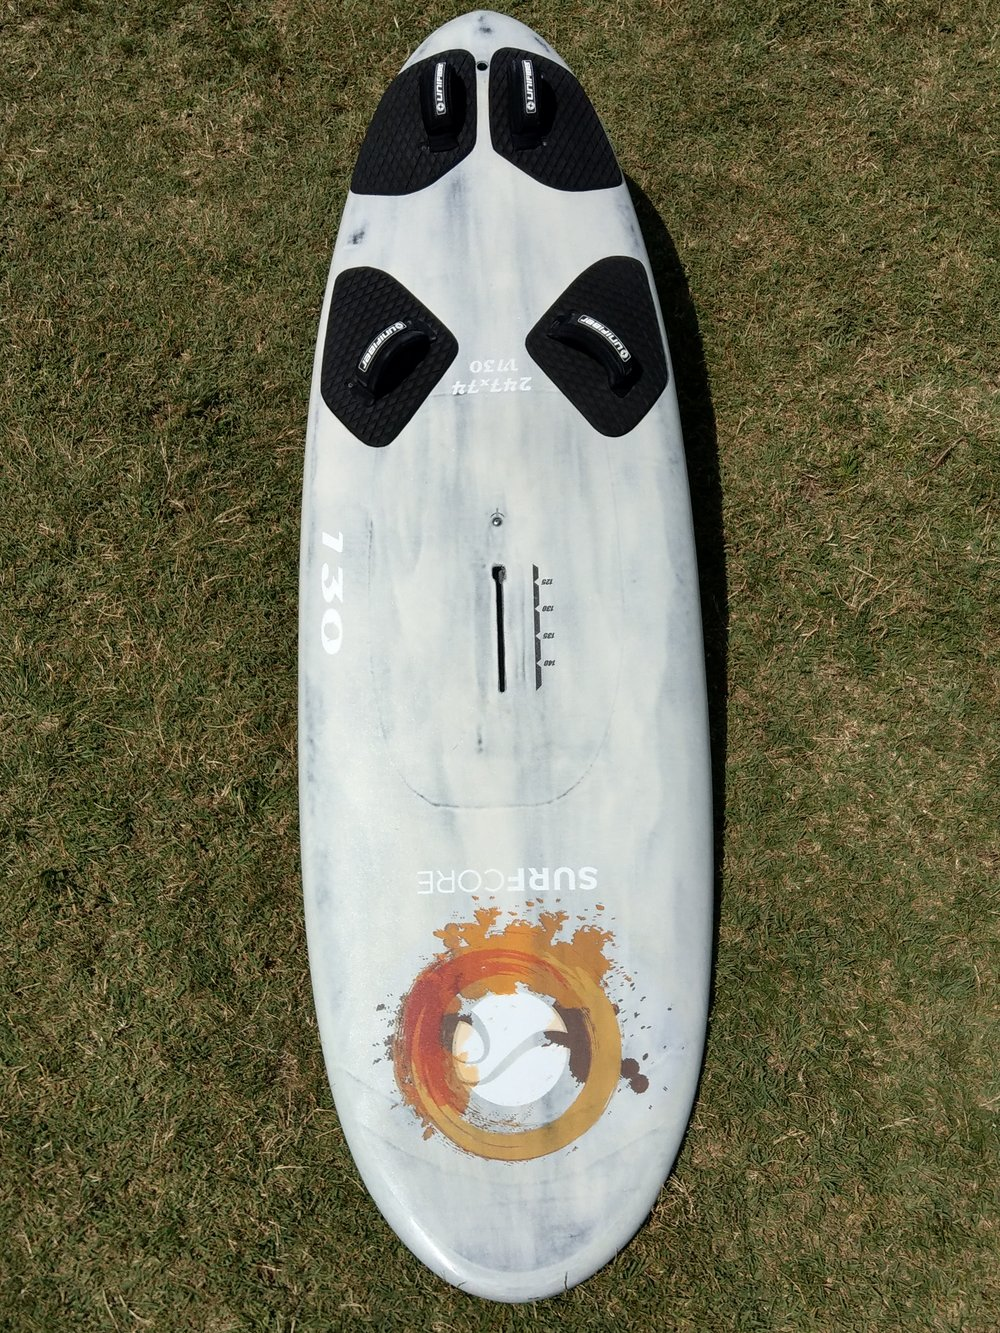 Surf Core freeride 130l